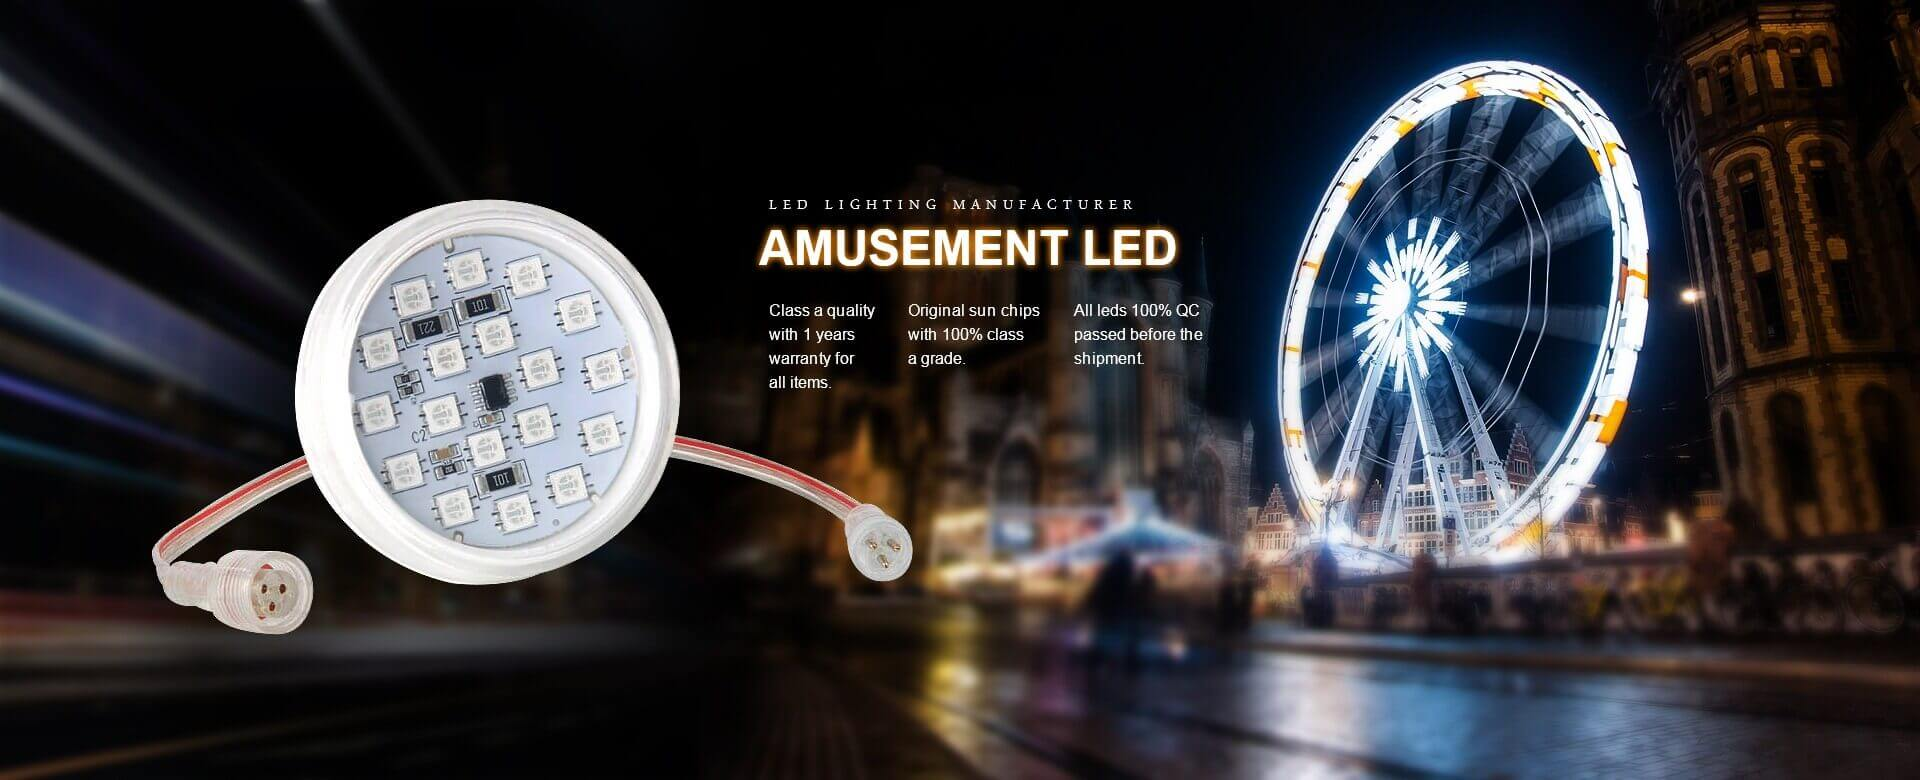 led-amusement-lighting